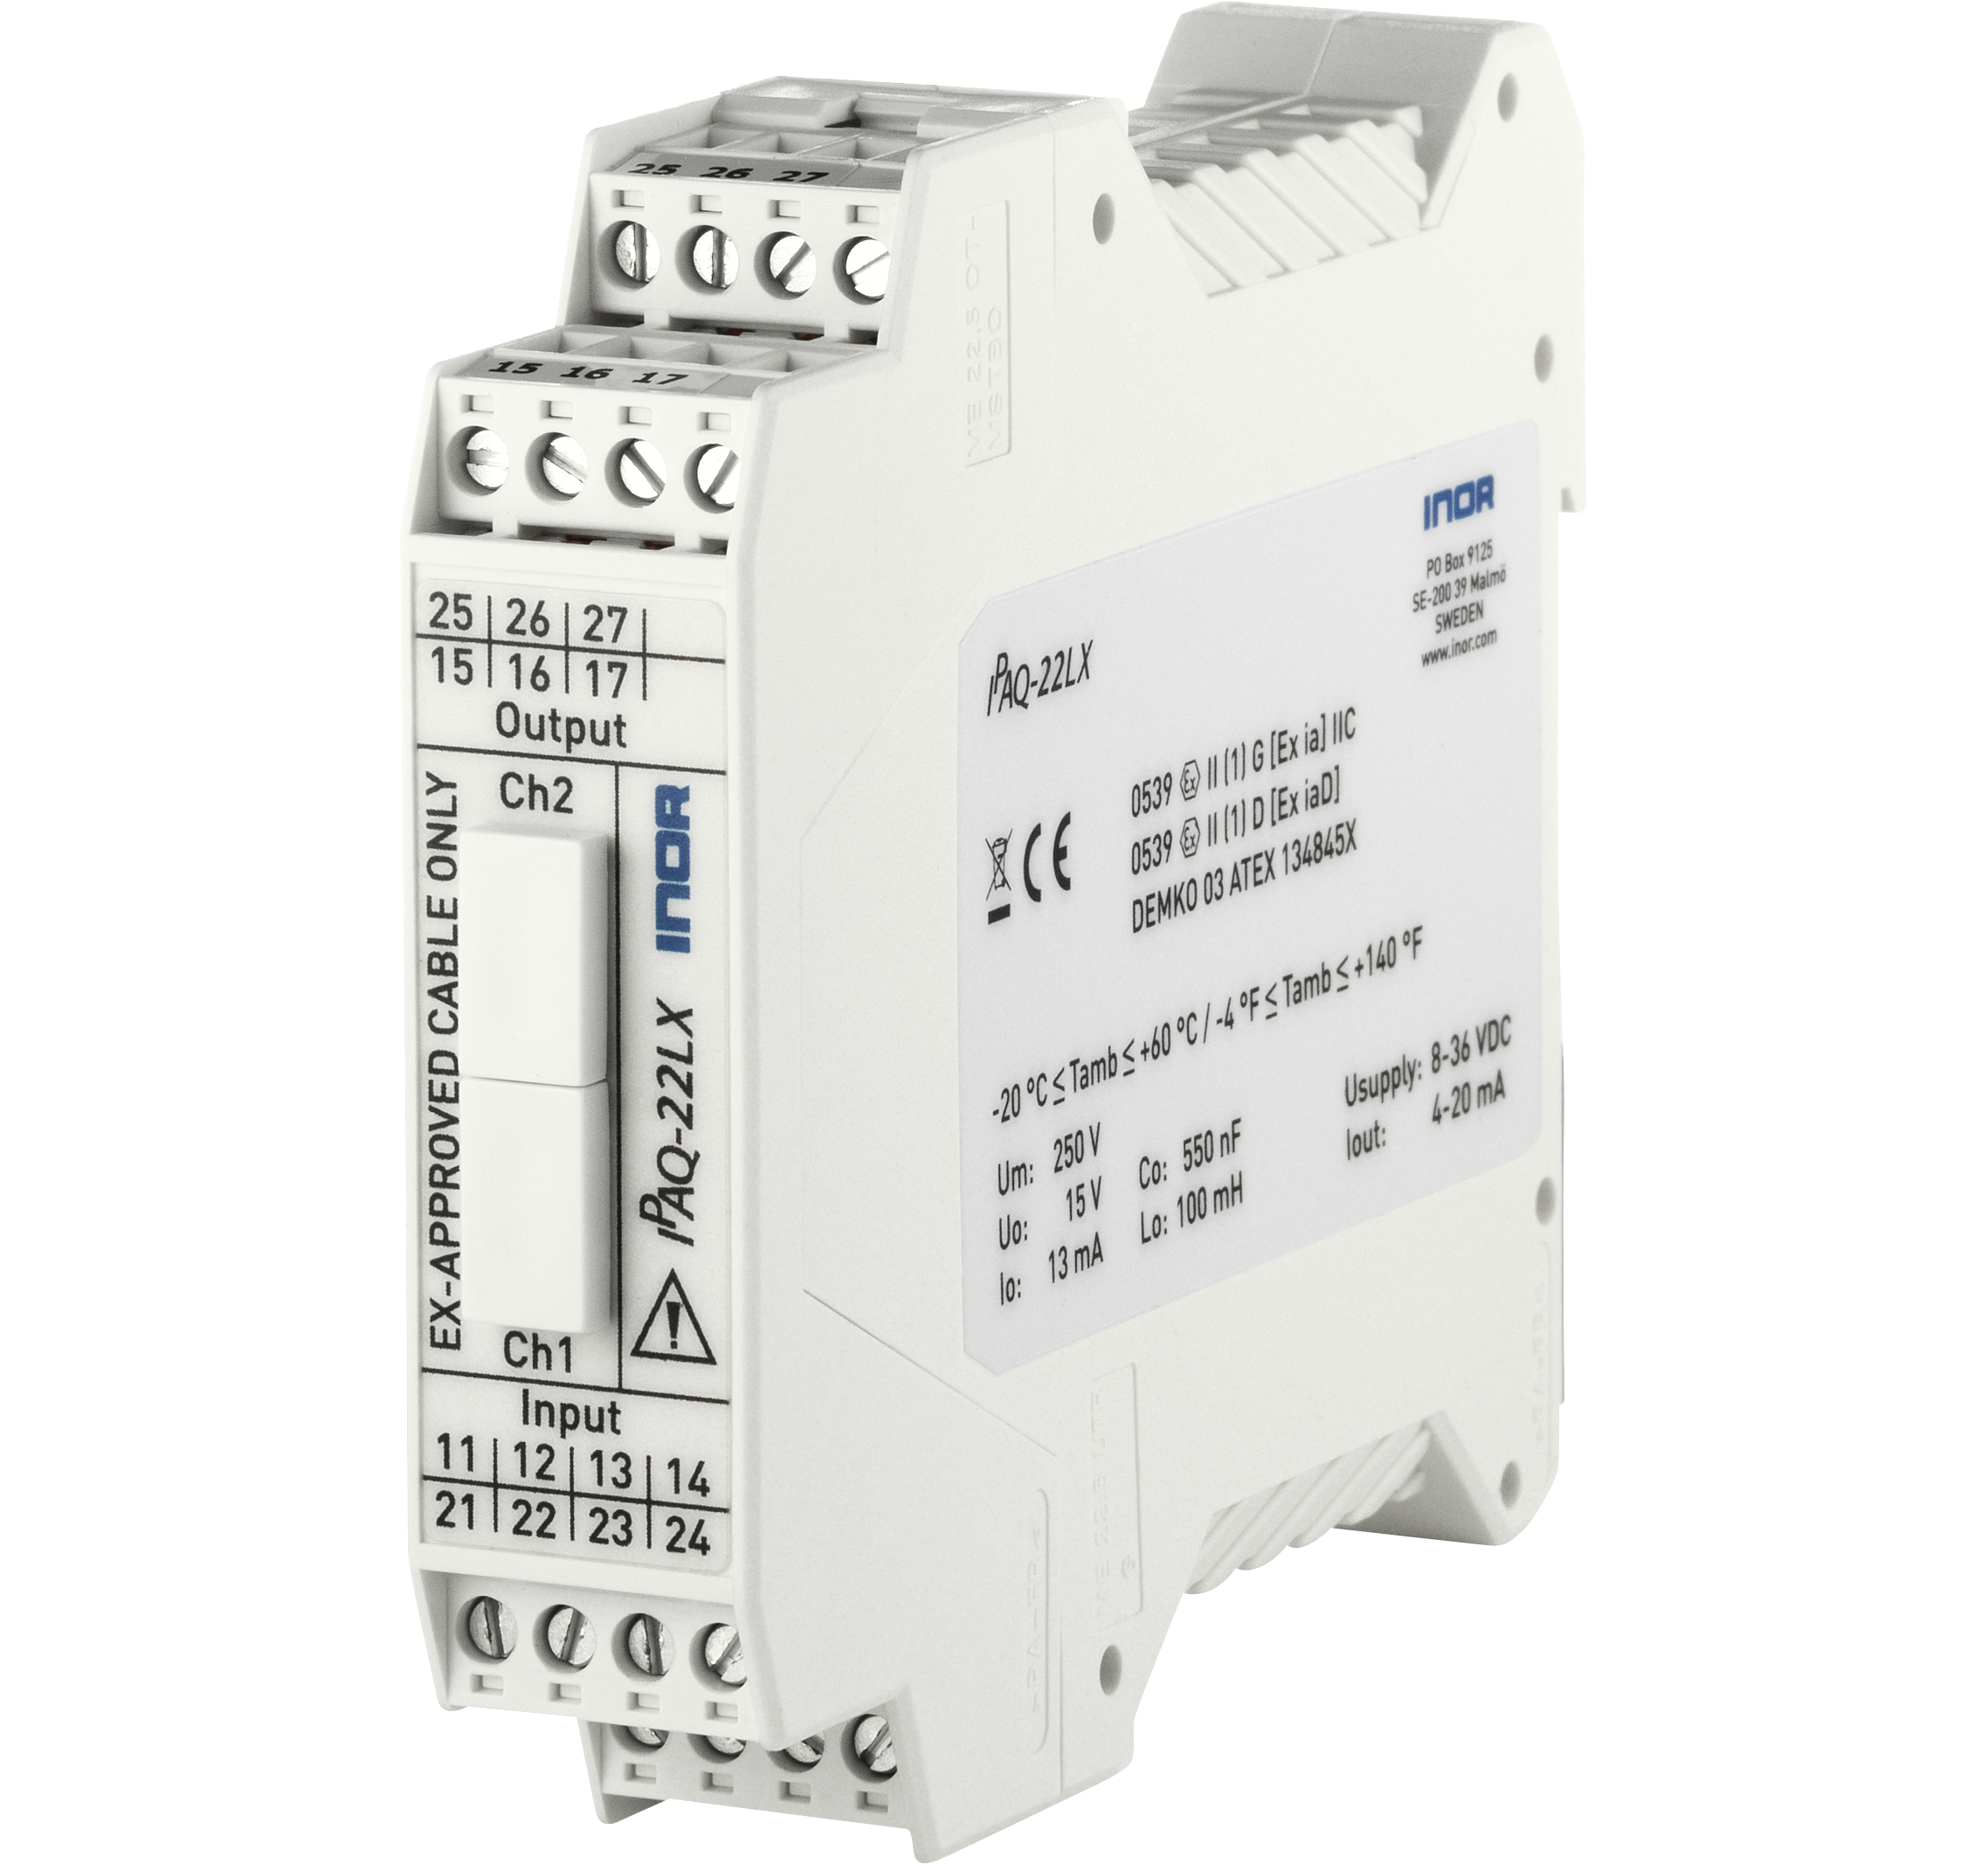 ipaq-22lx-universal-2-channel-din-rail-pc-programmable-isolation-1500-v-atex-approval-fixed-terminals